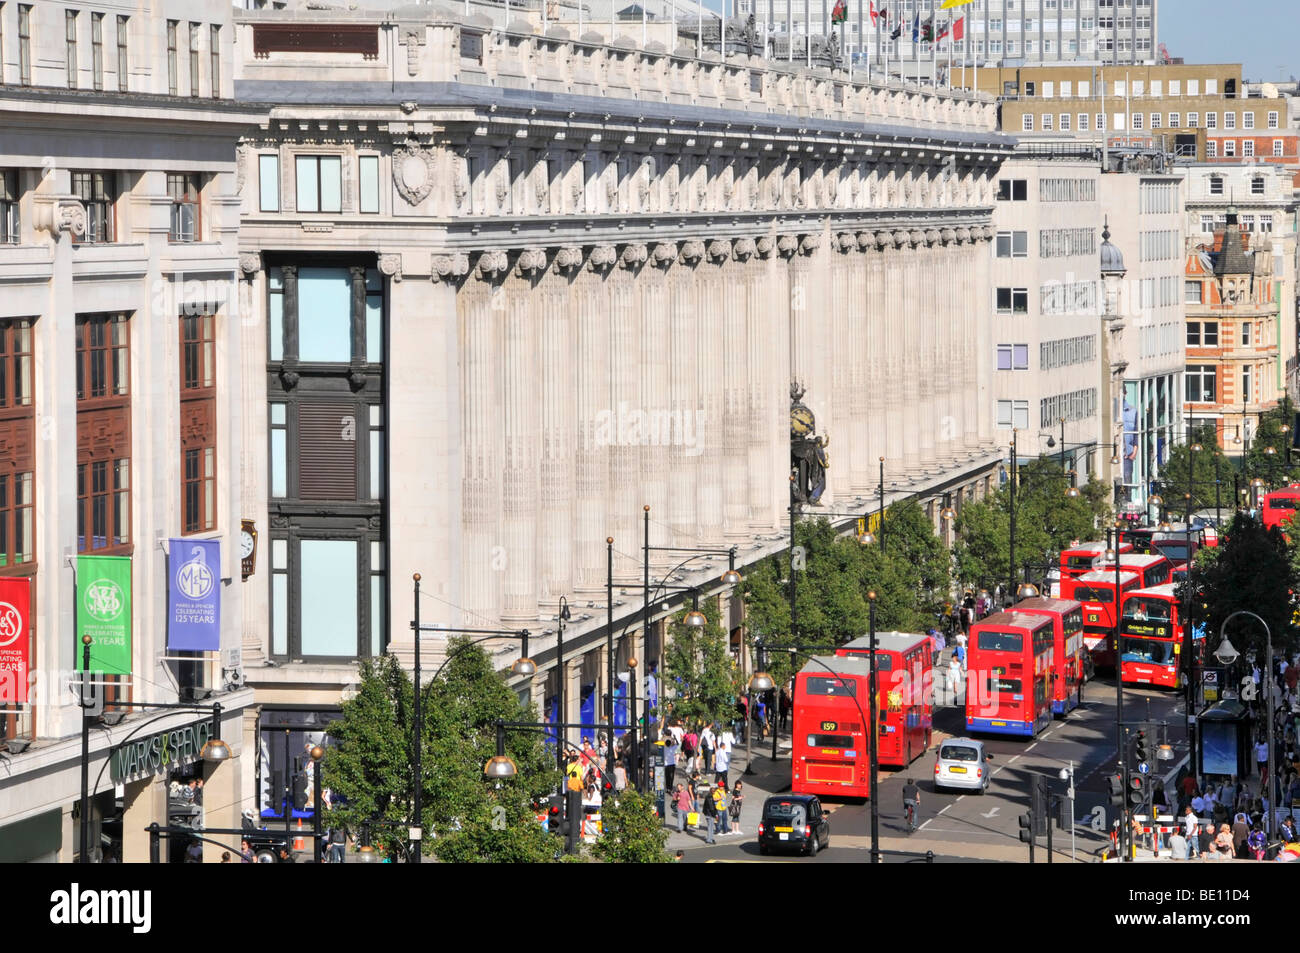 Oxford Street frontage of Selfridges department store with queue of double decker red London buses West End London - Stock Image